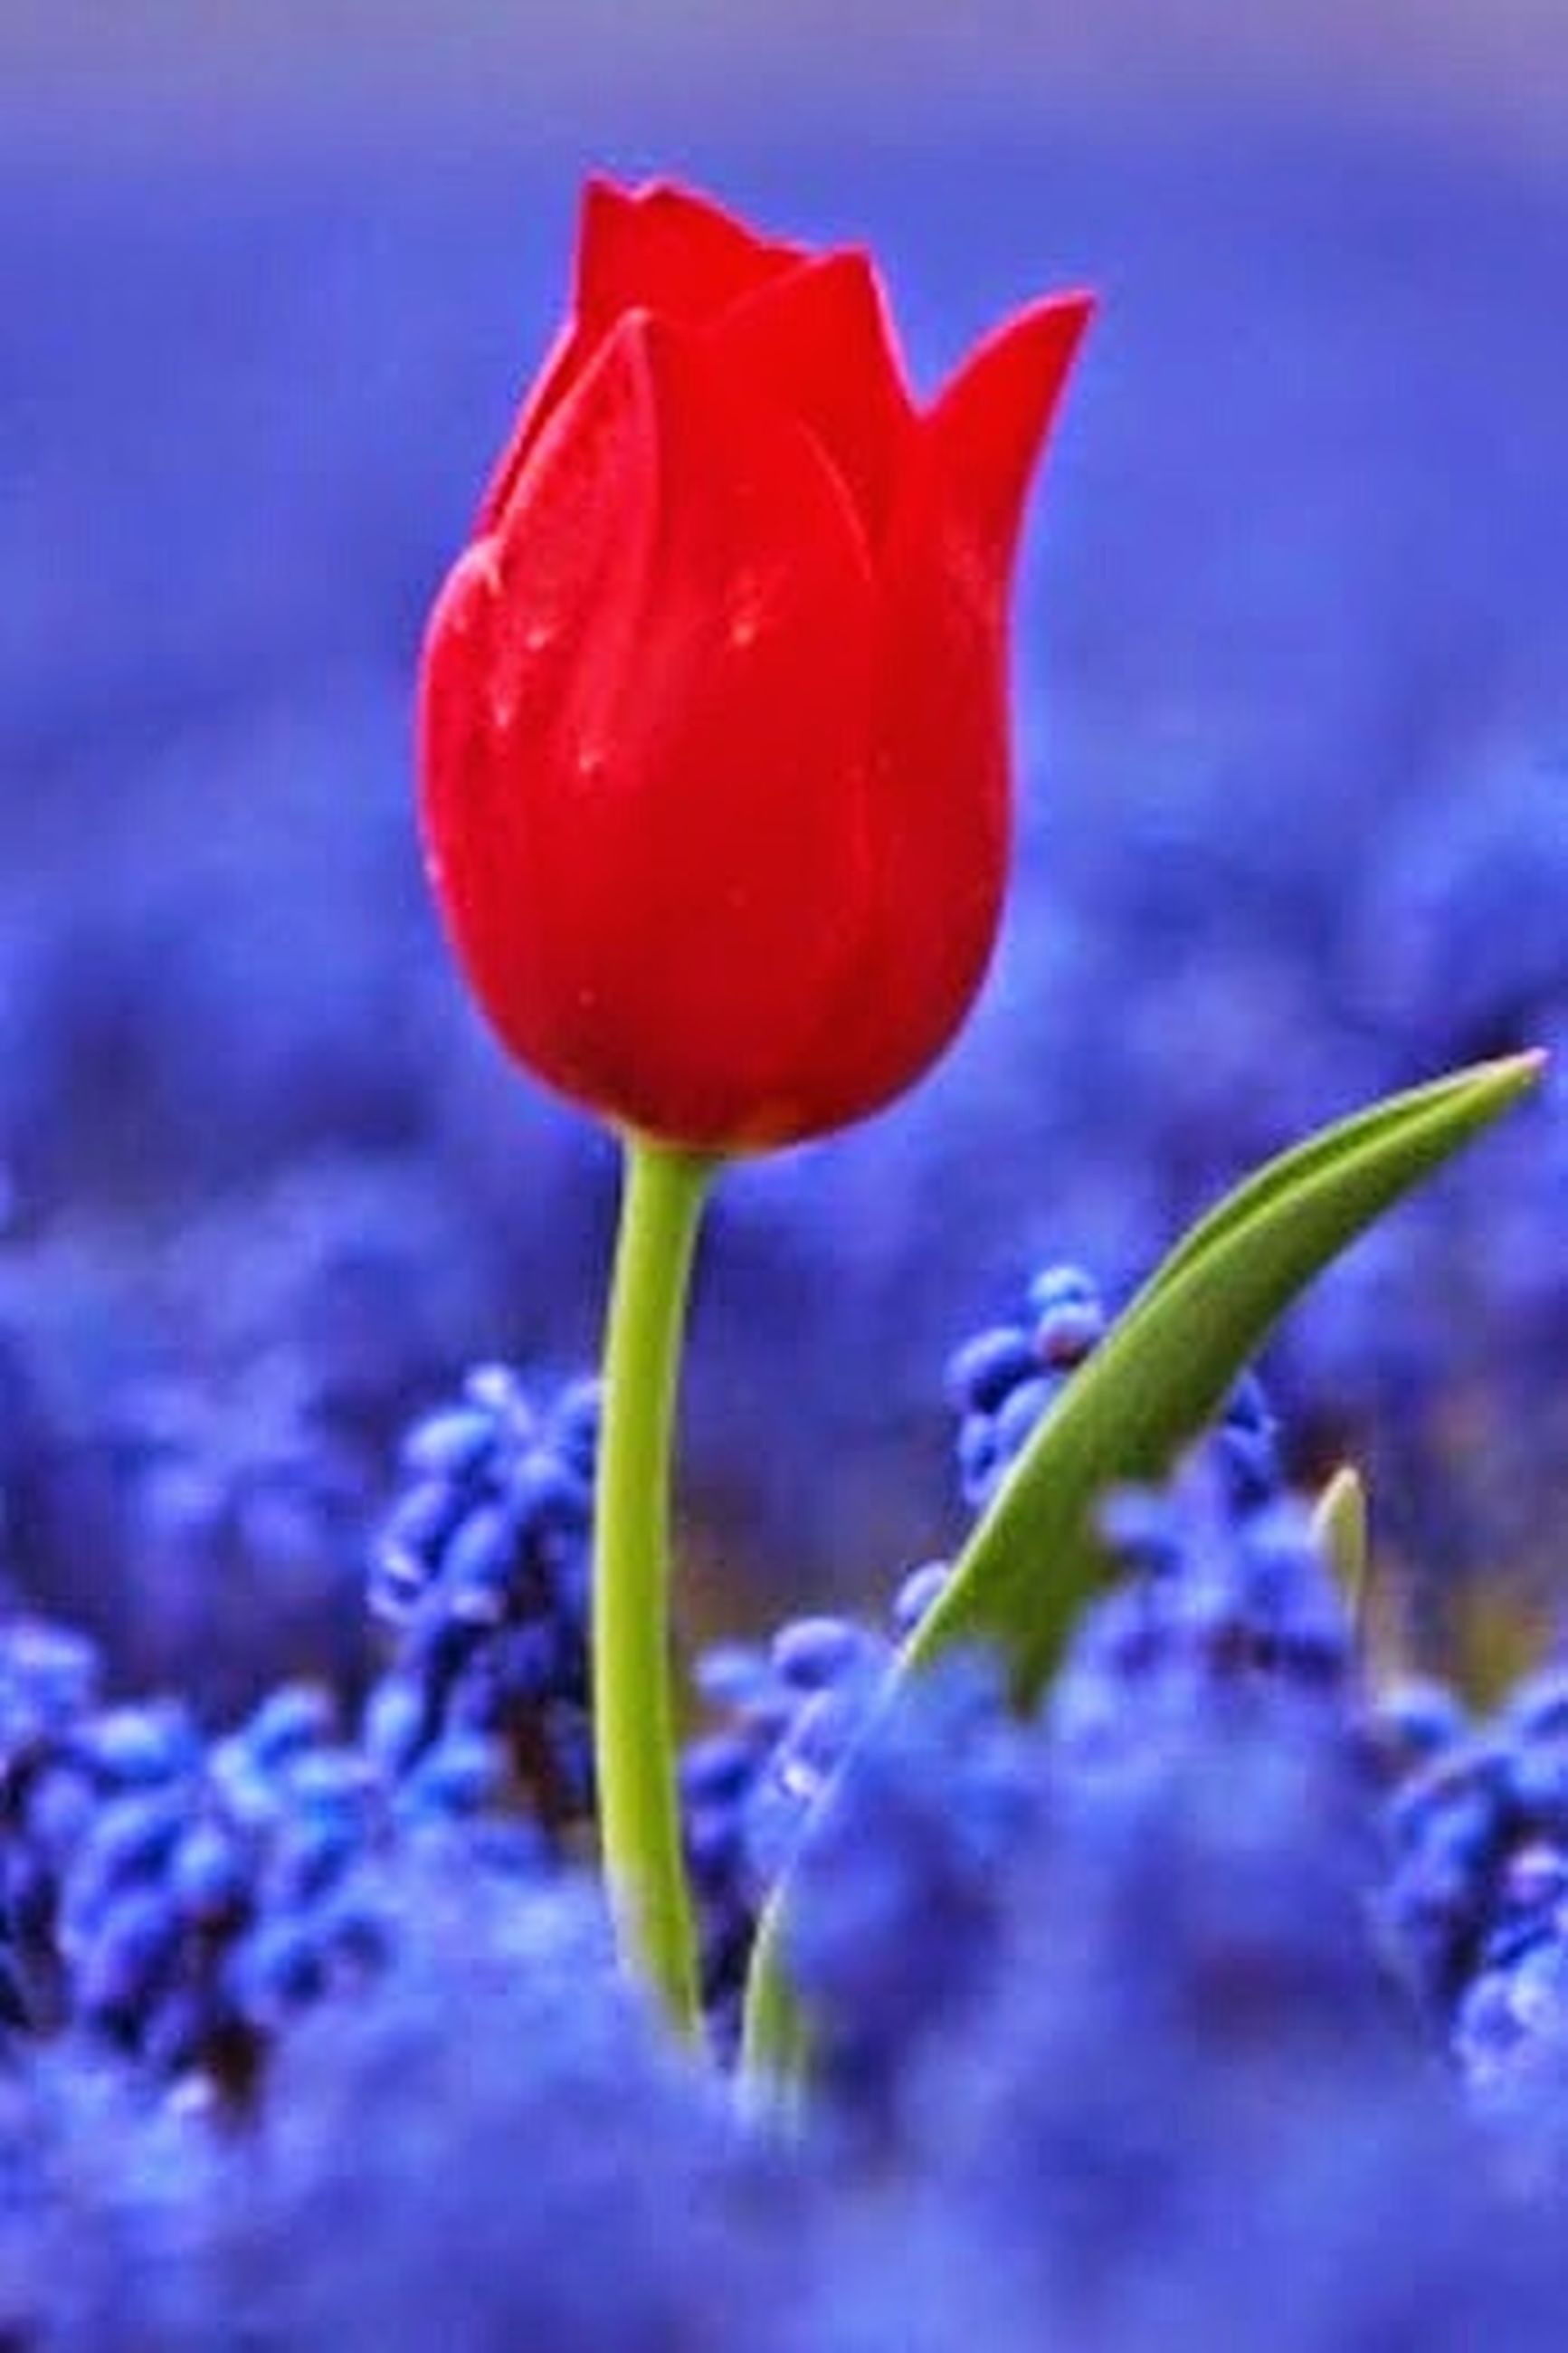 flower, freshness, fragility, petal, growth, close-up, beauty in nature, stem, flower head, plant, nature, focus on foreground, bud, red, tulip, poppy, selective focus, blue, blooming, purple